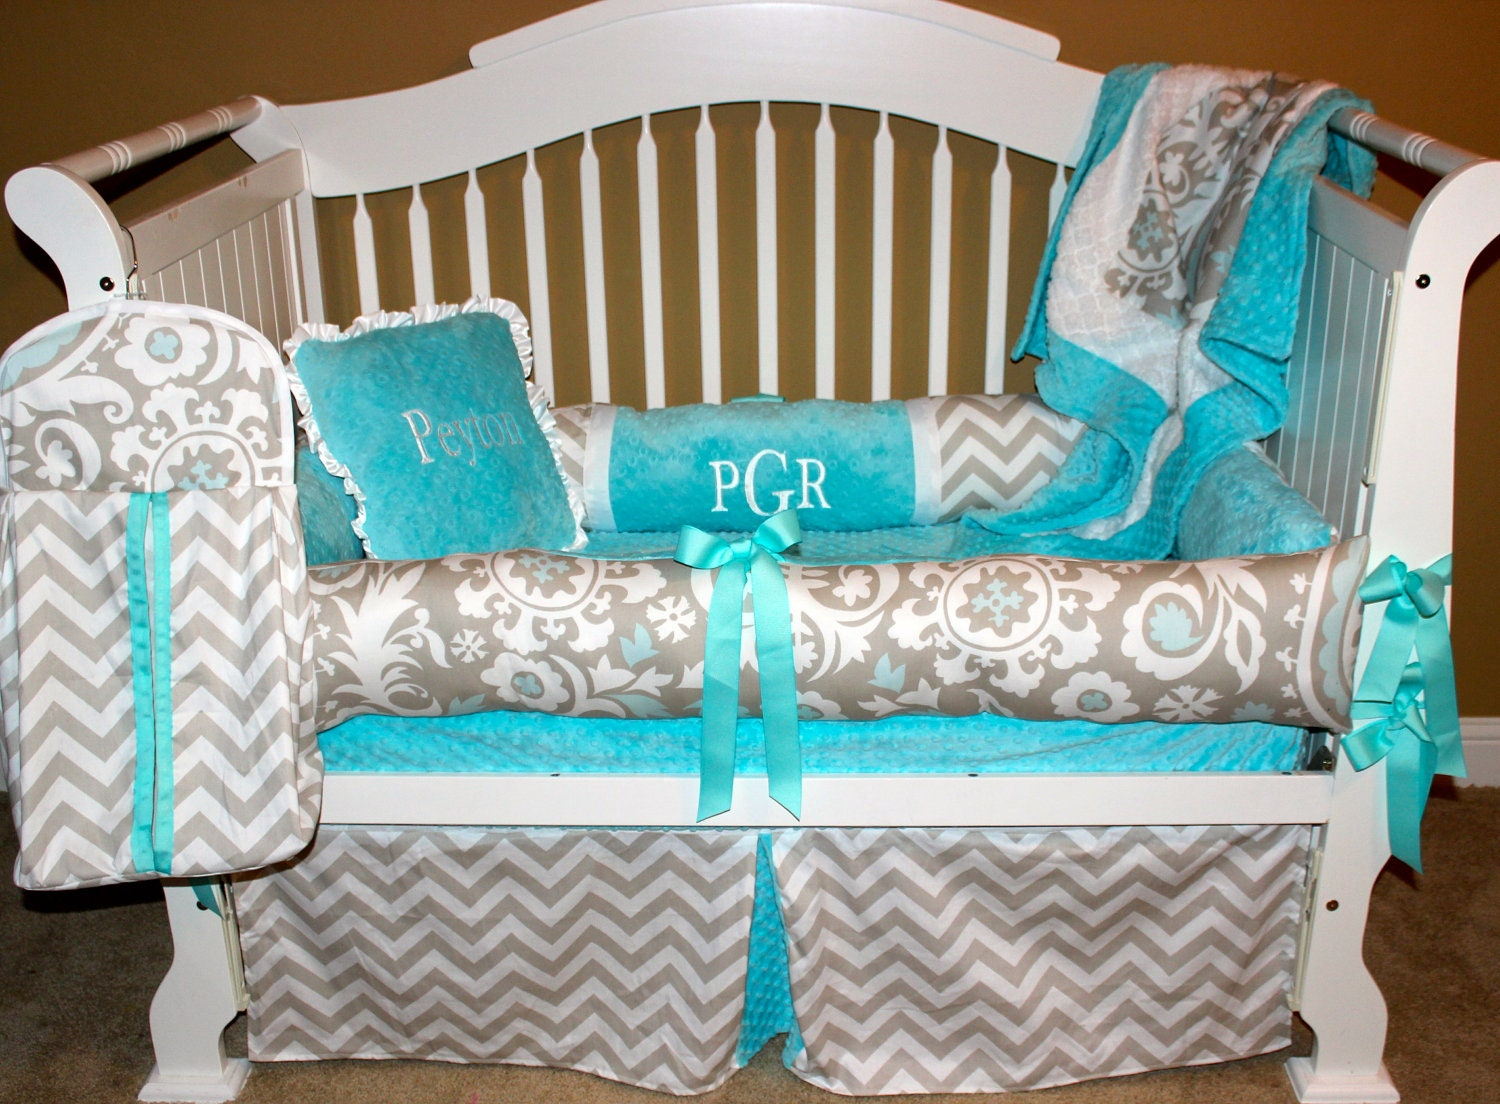 Tiffany custom baby bedding crib set 6 pc set by babiesnbaubles